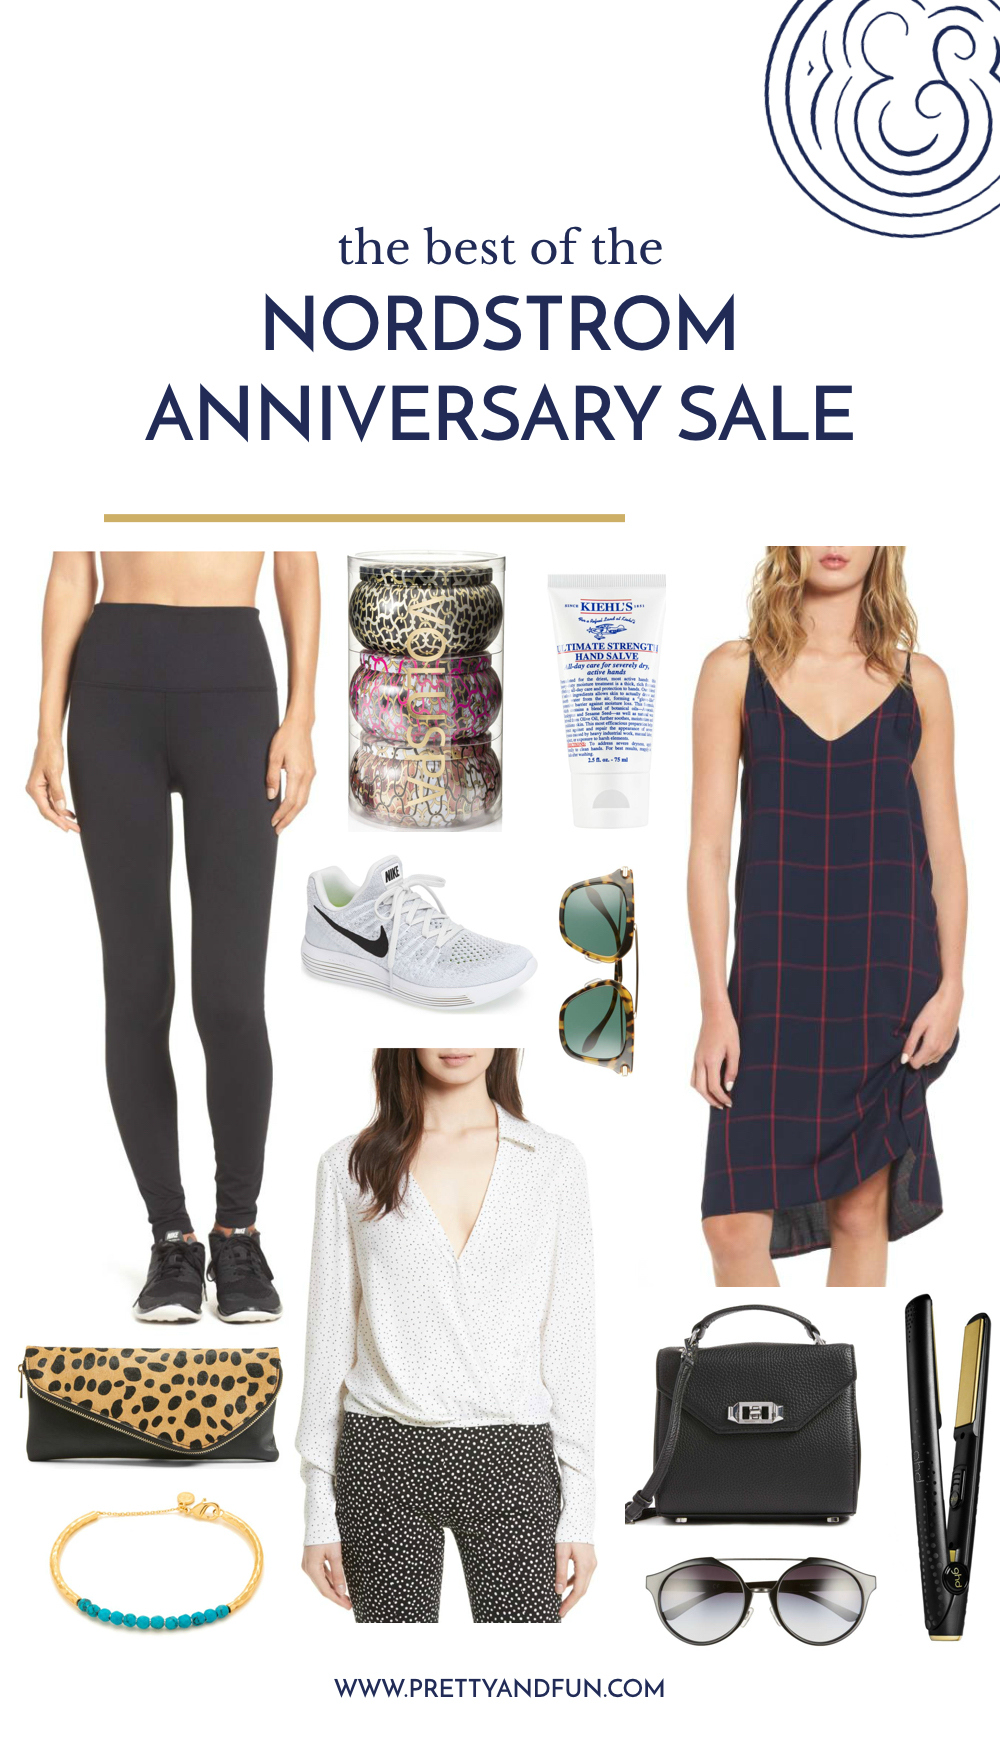 Best of the Nordstrom Anniversary Sale.